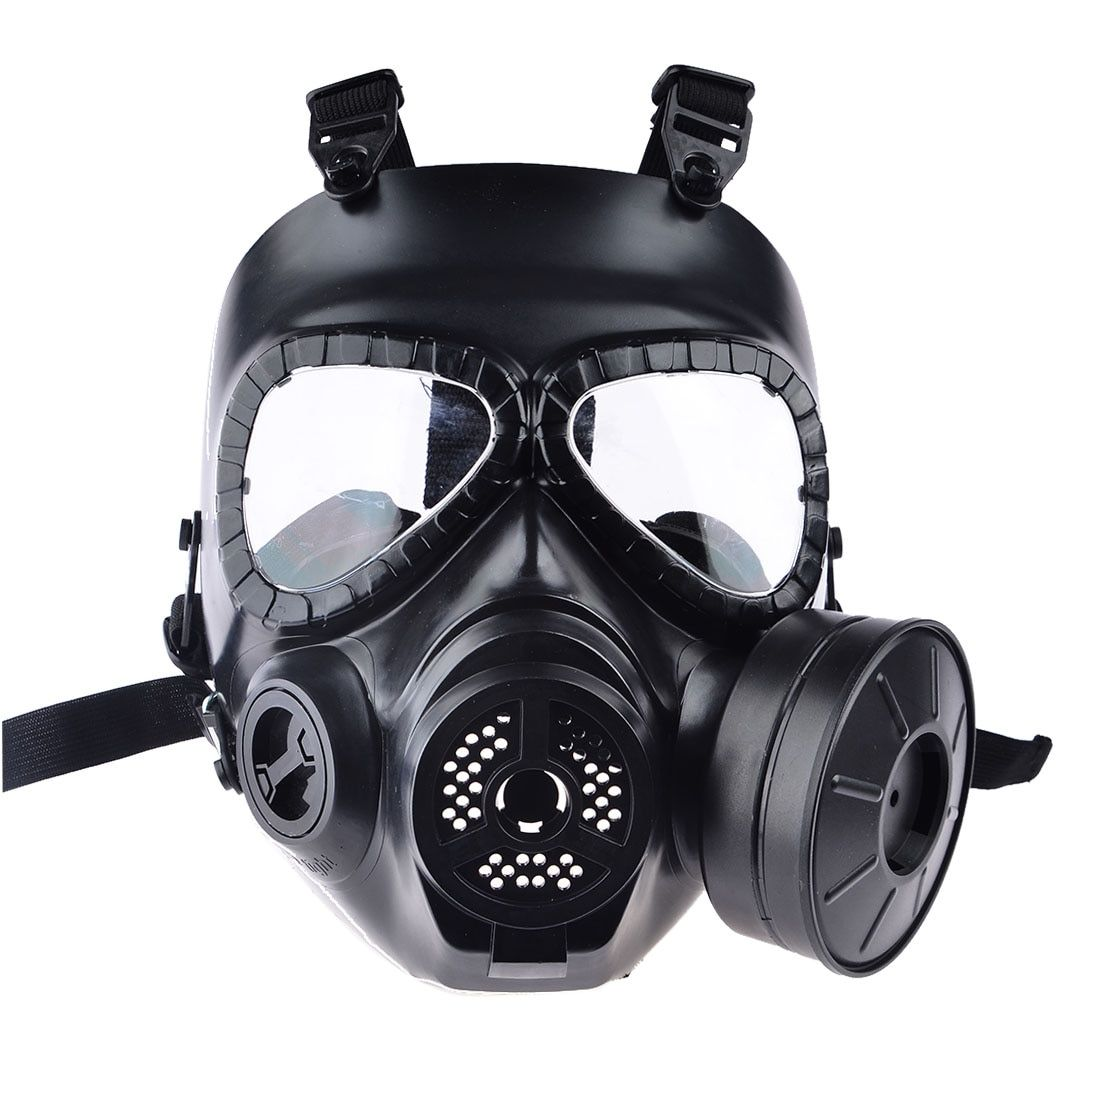 1/2 PCS Hot CS Airsoft Paintball masque à gaz factice avec ventilateur pour Cosplay Protection Halloween mal Antivirus crâne Festival décor